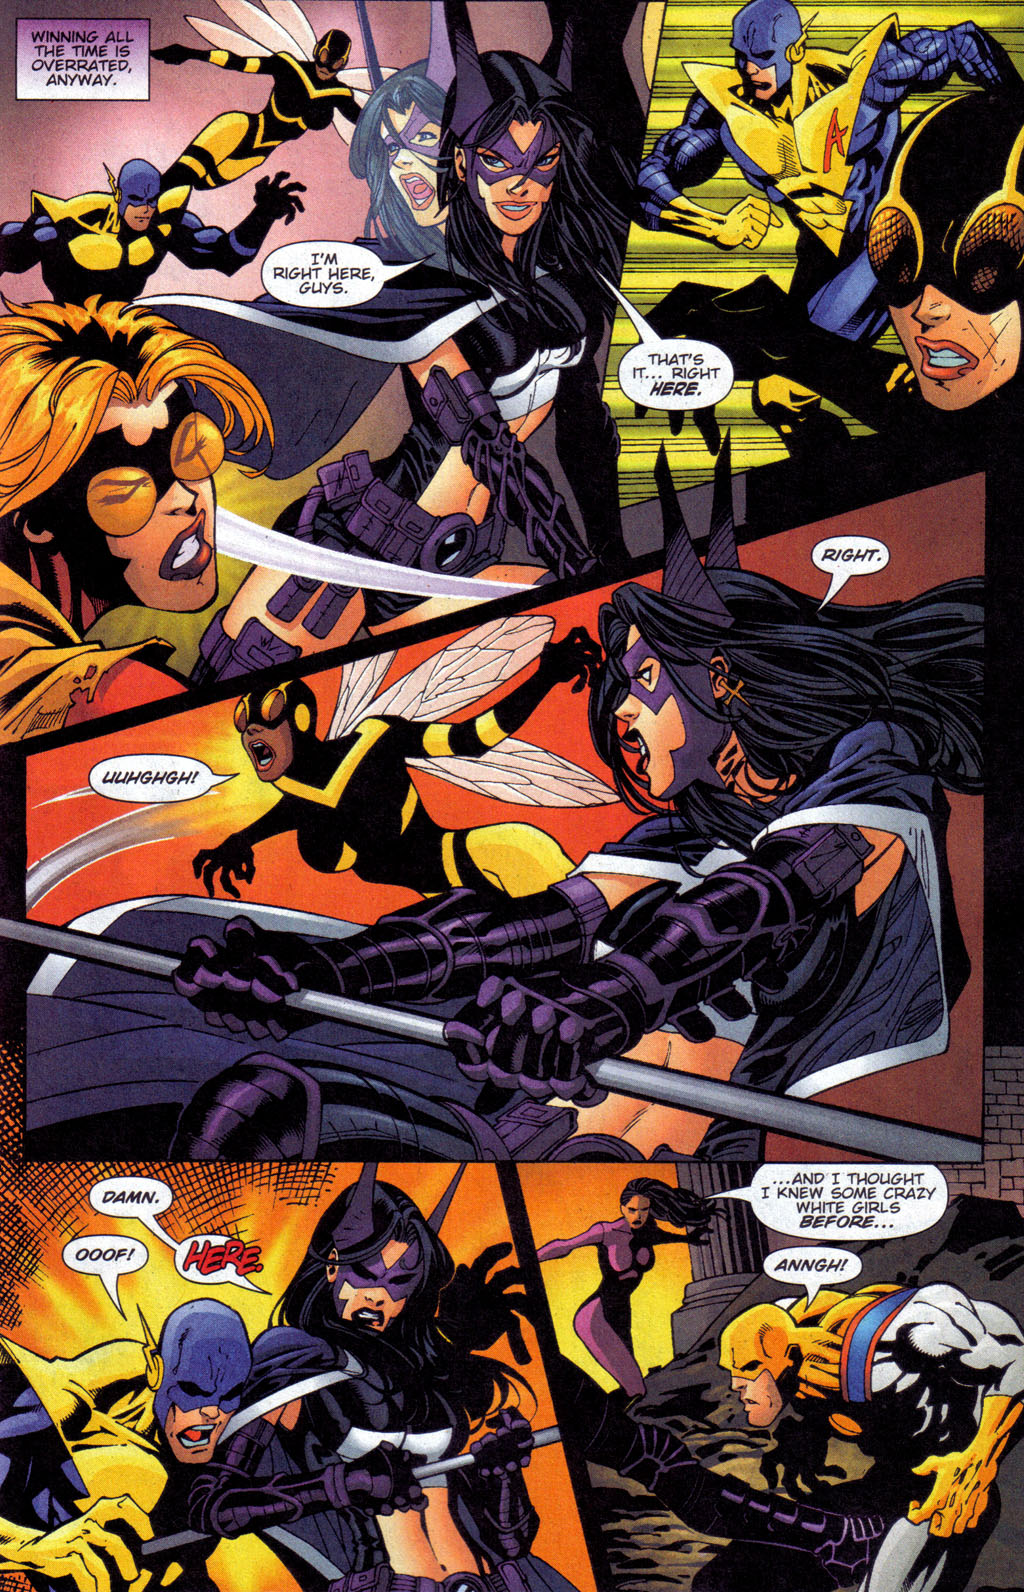 073 06 Huntress Flamebird Bumblebeeb Agent Liberty Air-Wave.jpg